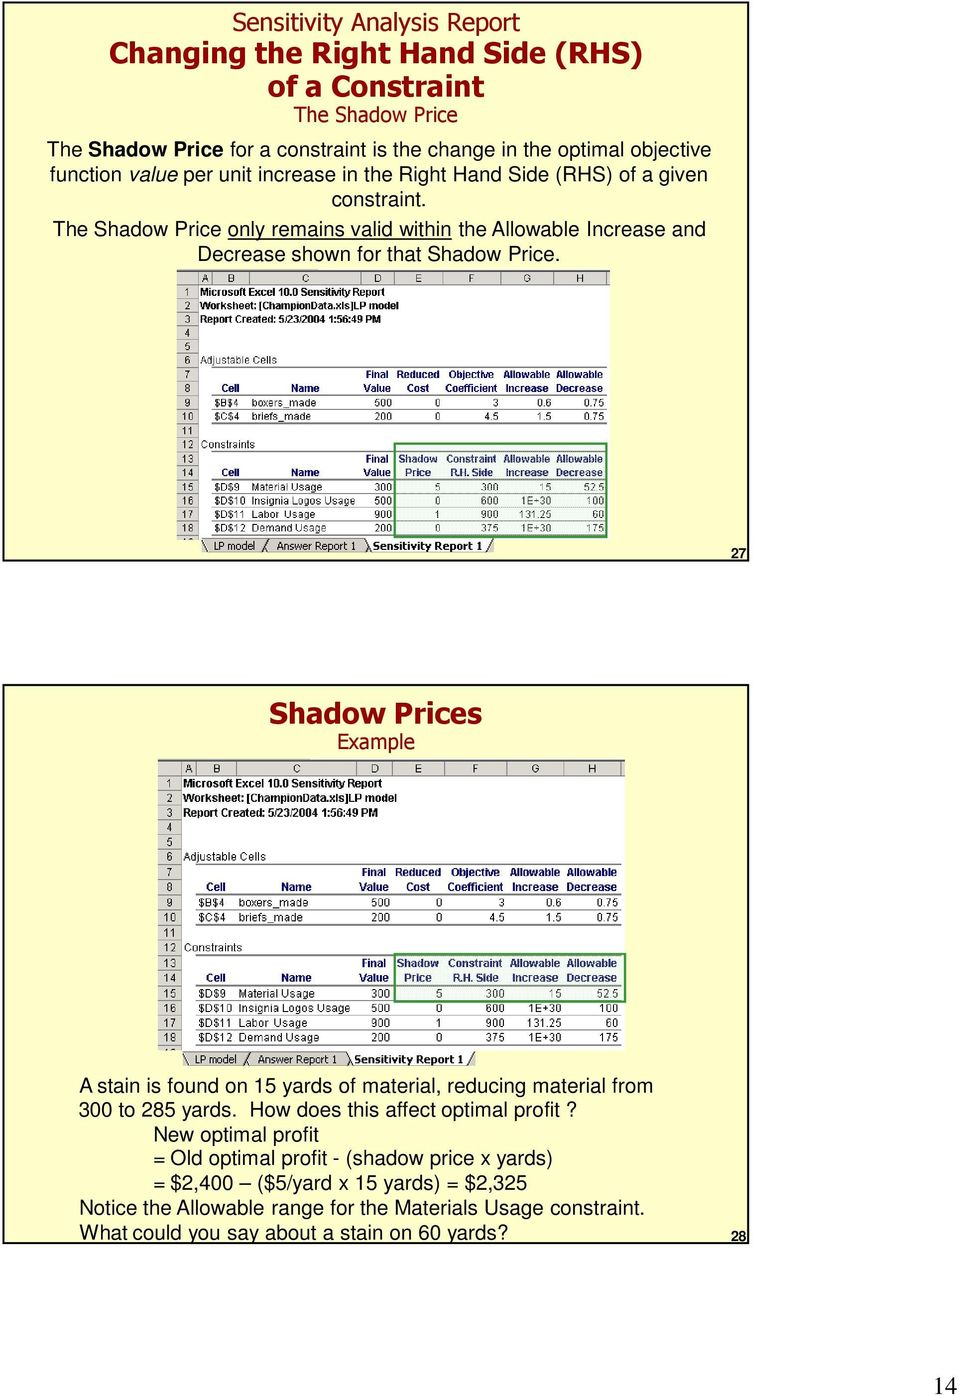 The Shadow Price only remains valid within the Allowable Increase and Decrease shown for that Shadow Price.